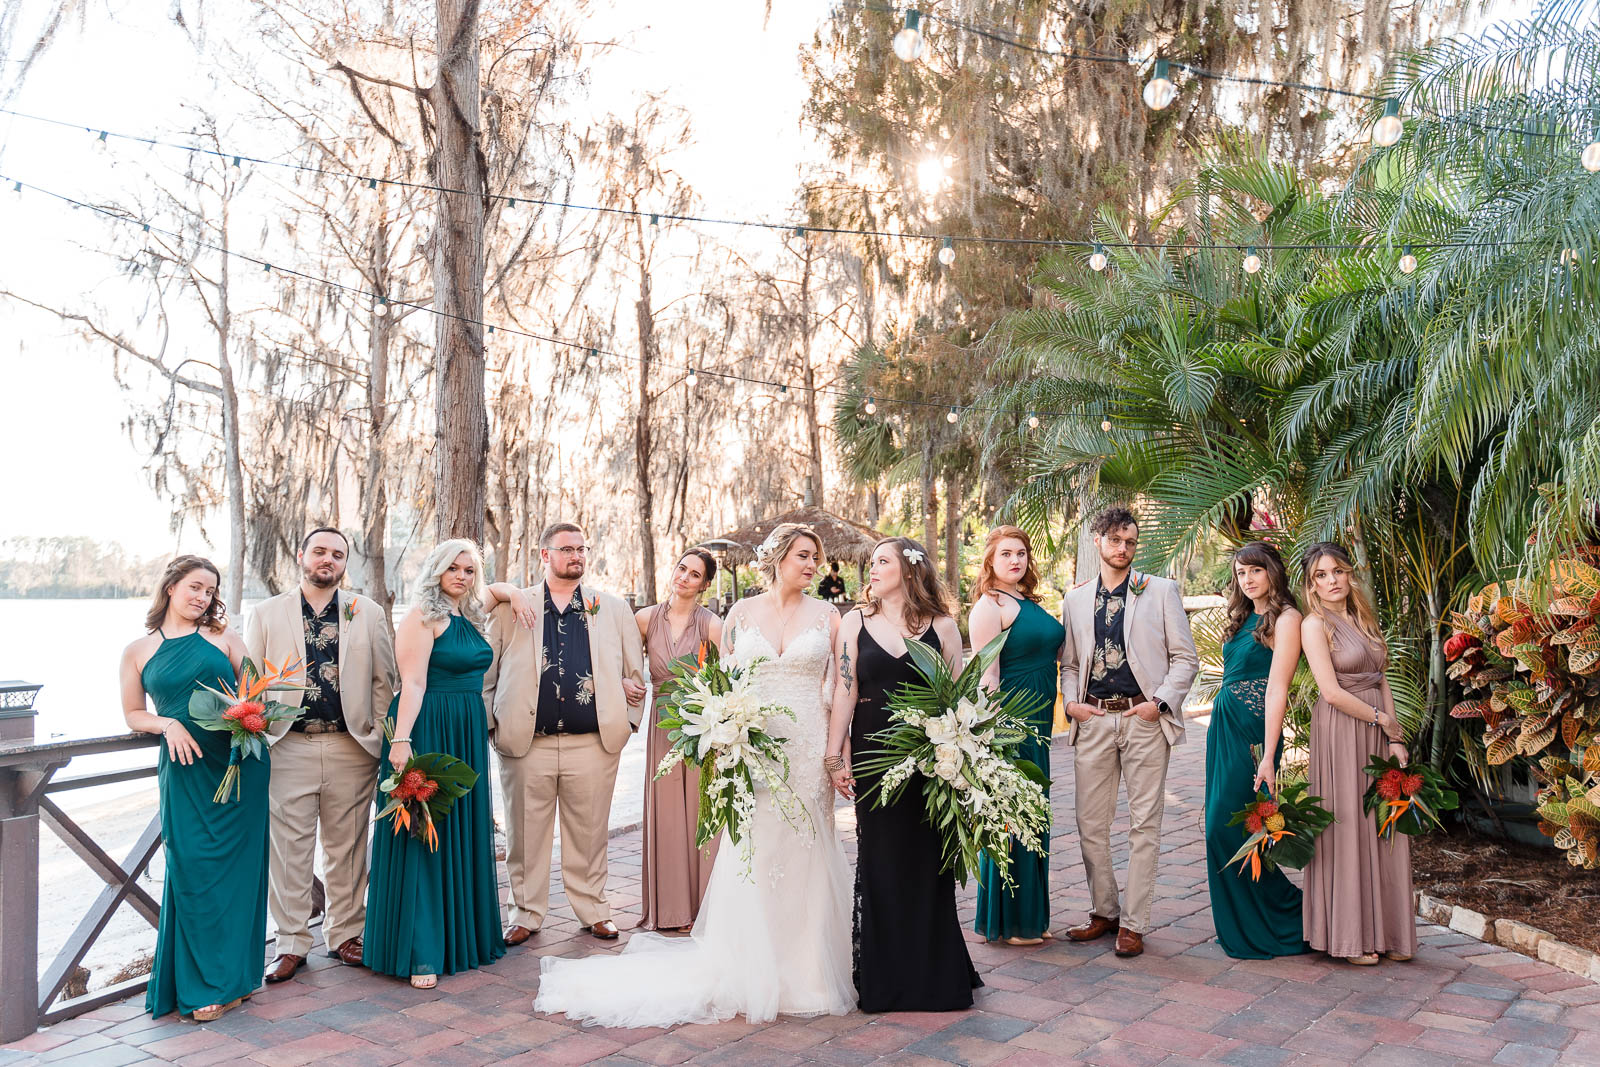 30 Bridal Party Processional Songs Our Dj Rocks